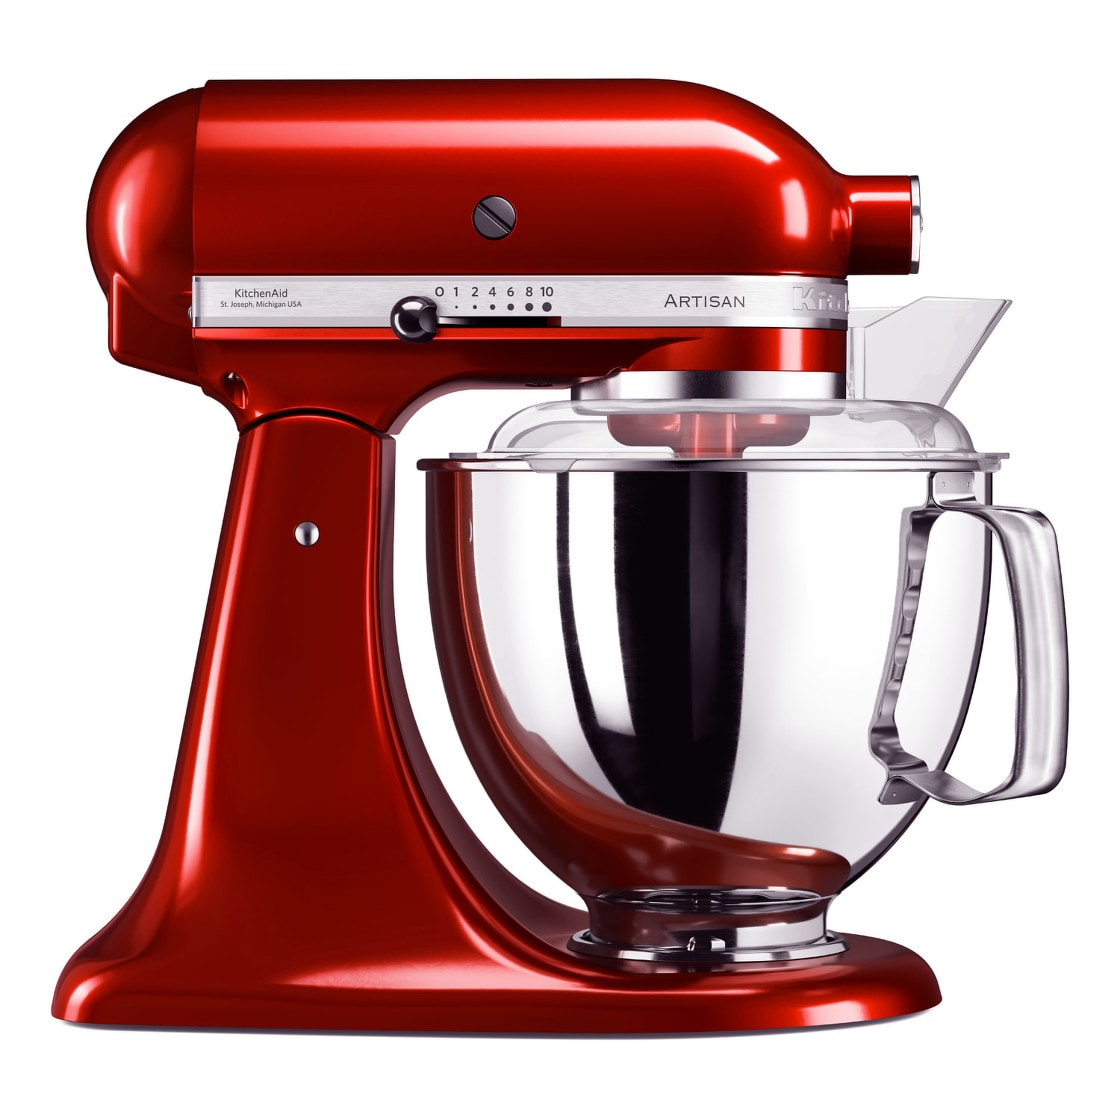 kitchenaid-artisan-5ksm175-1